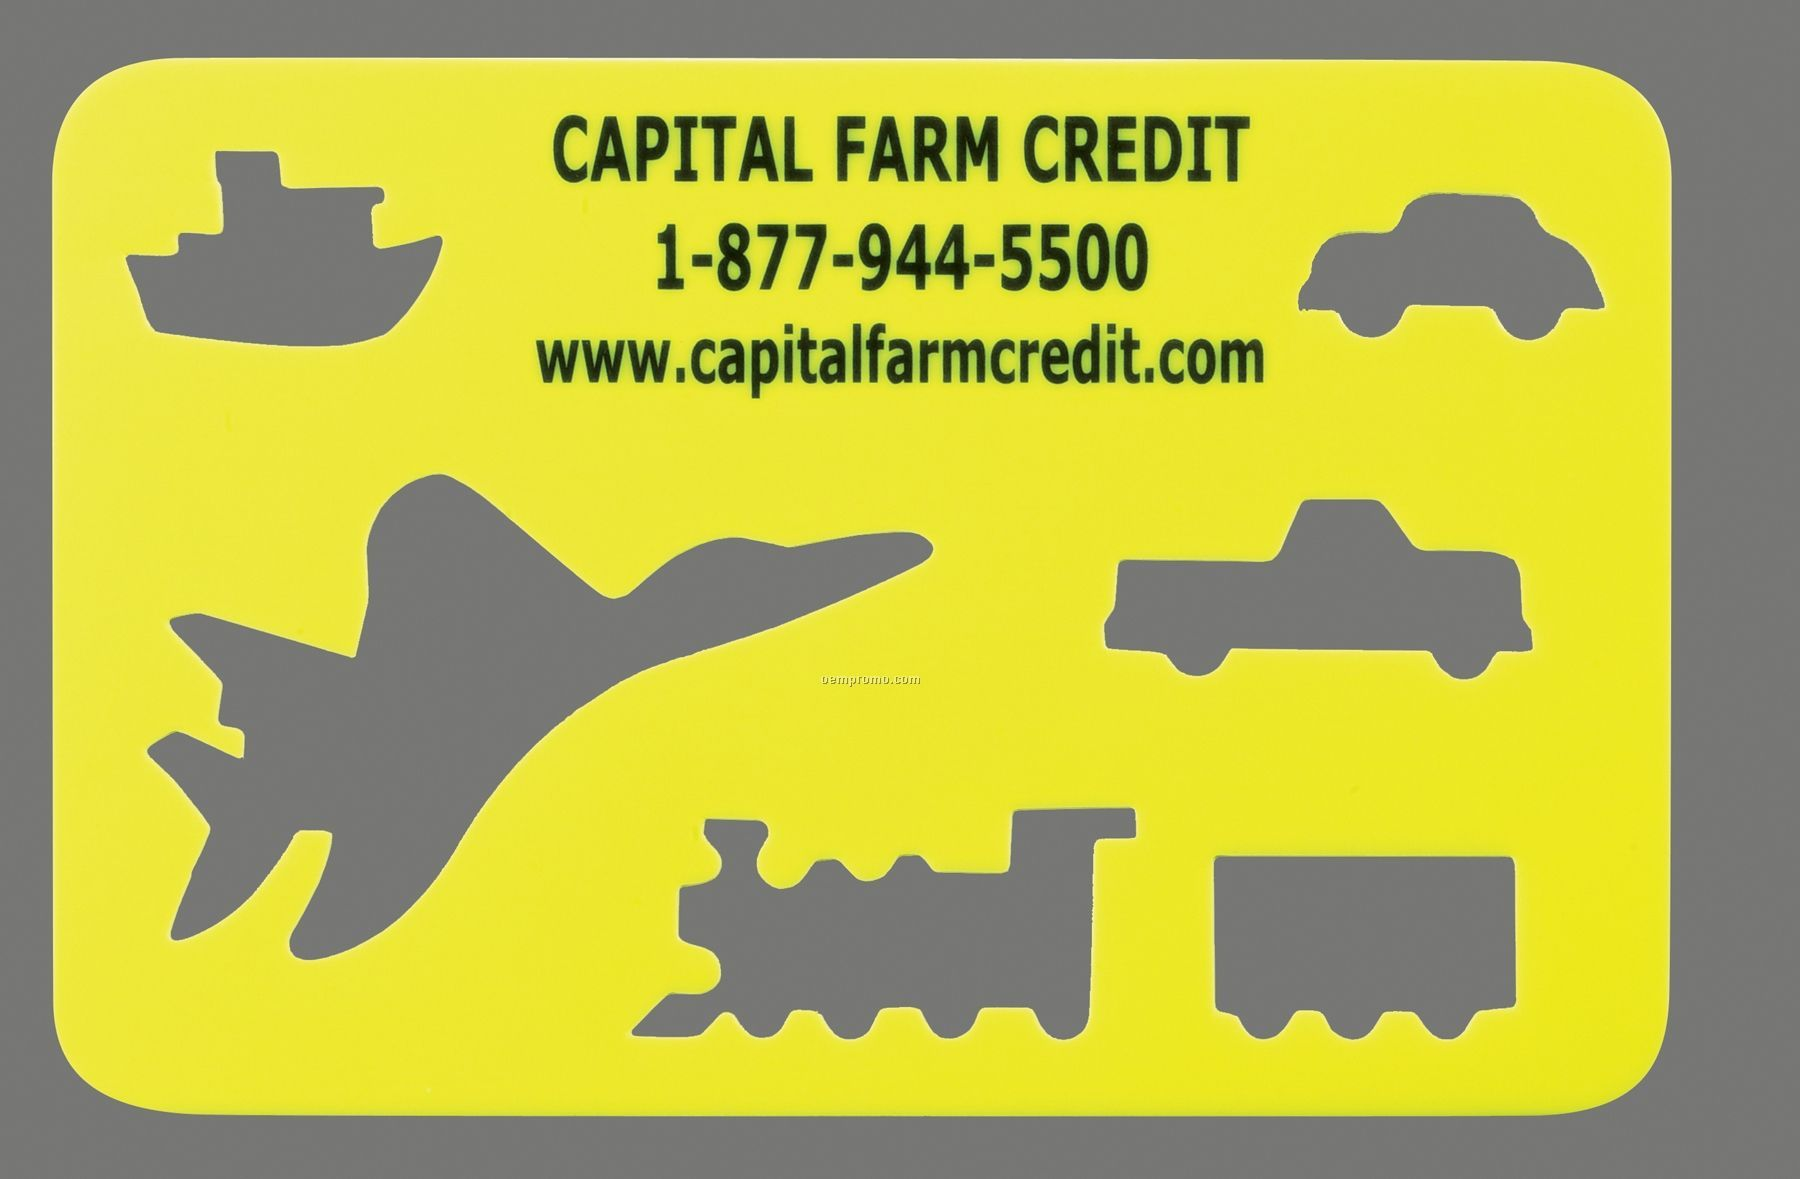 Stock Transportation Stencil With Vehicle Cutouts - 1 Color